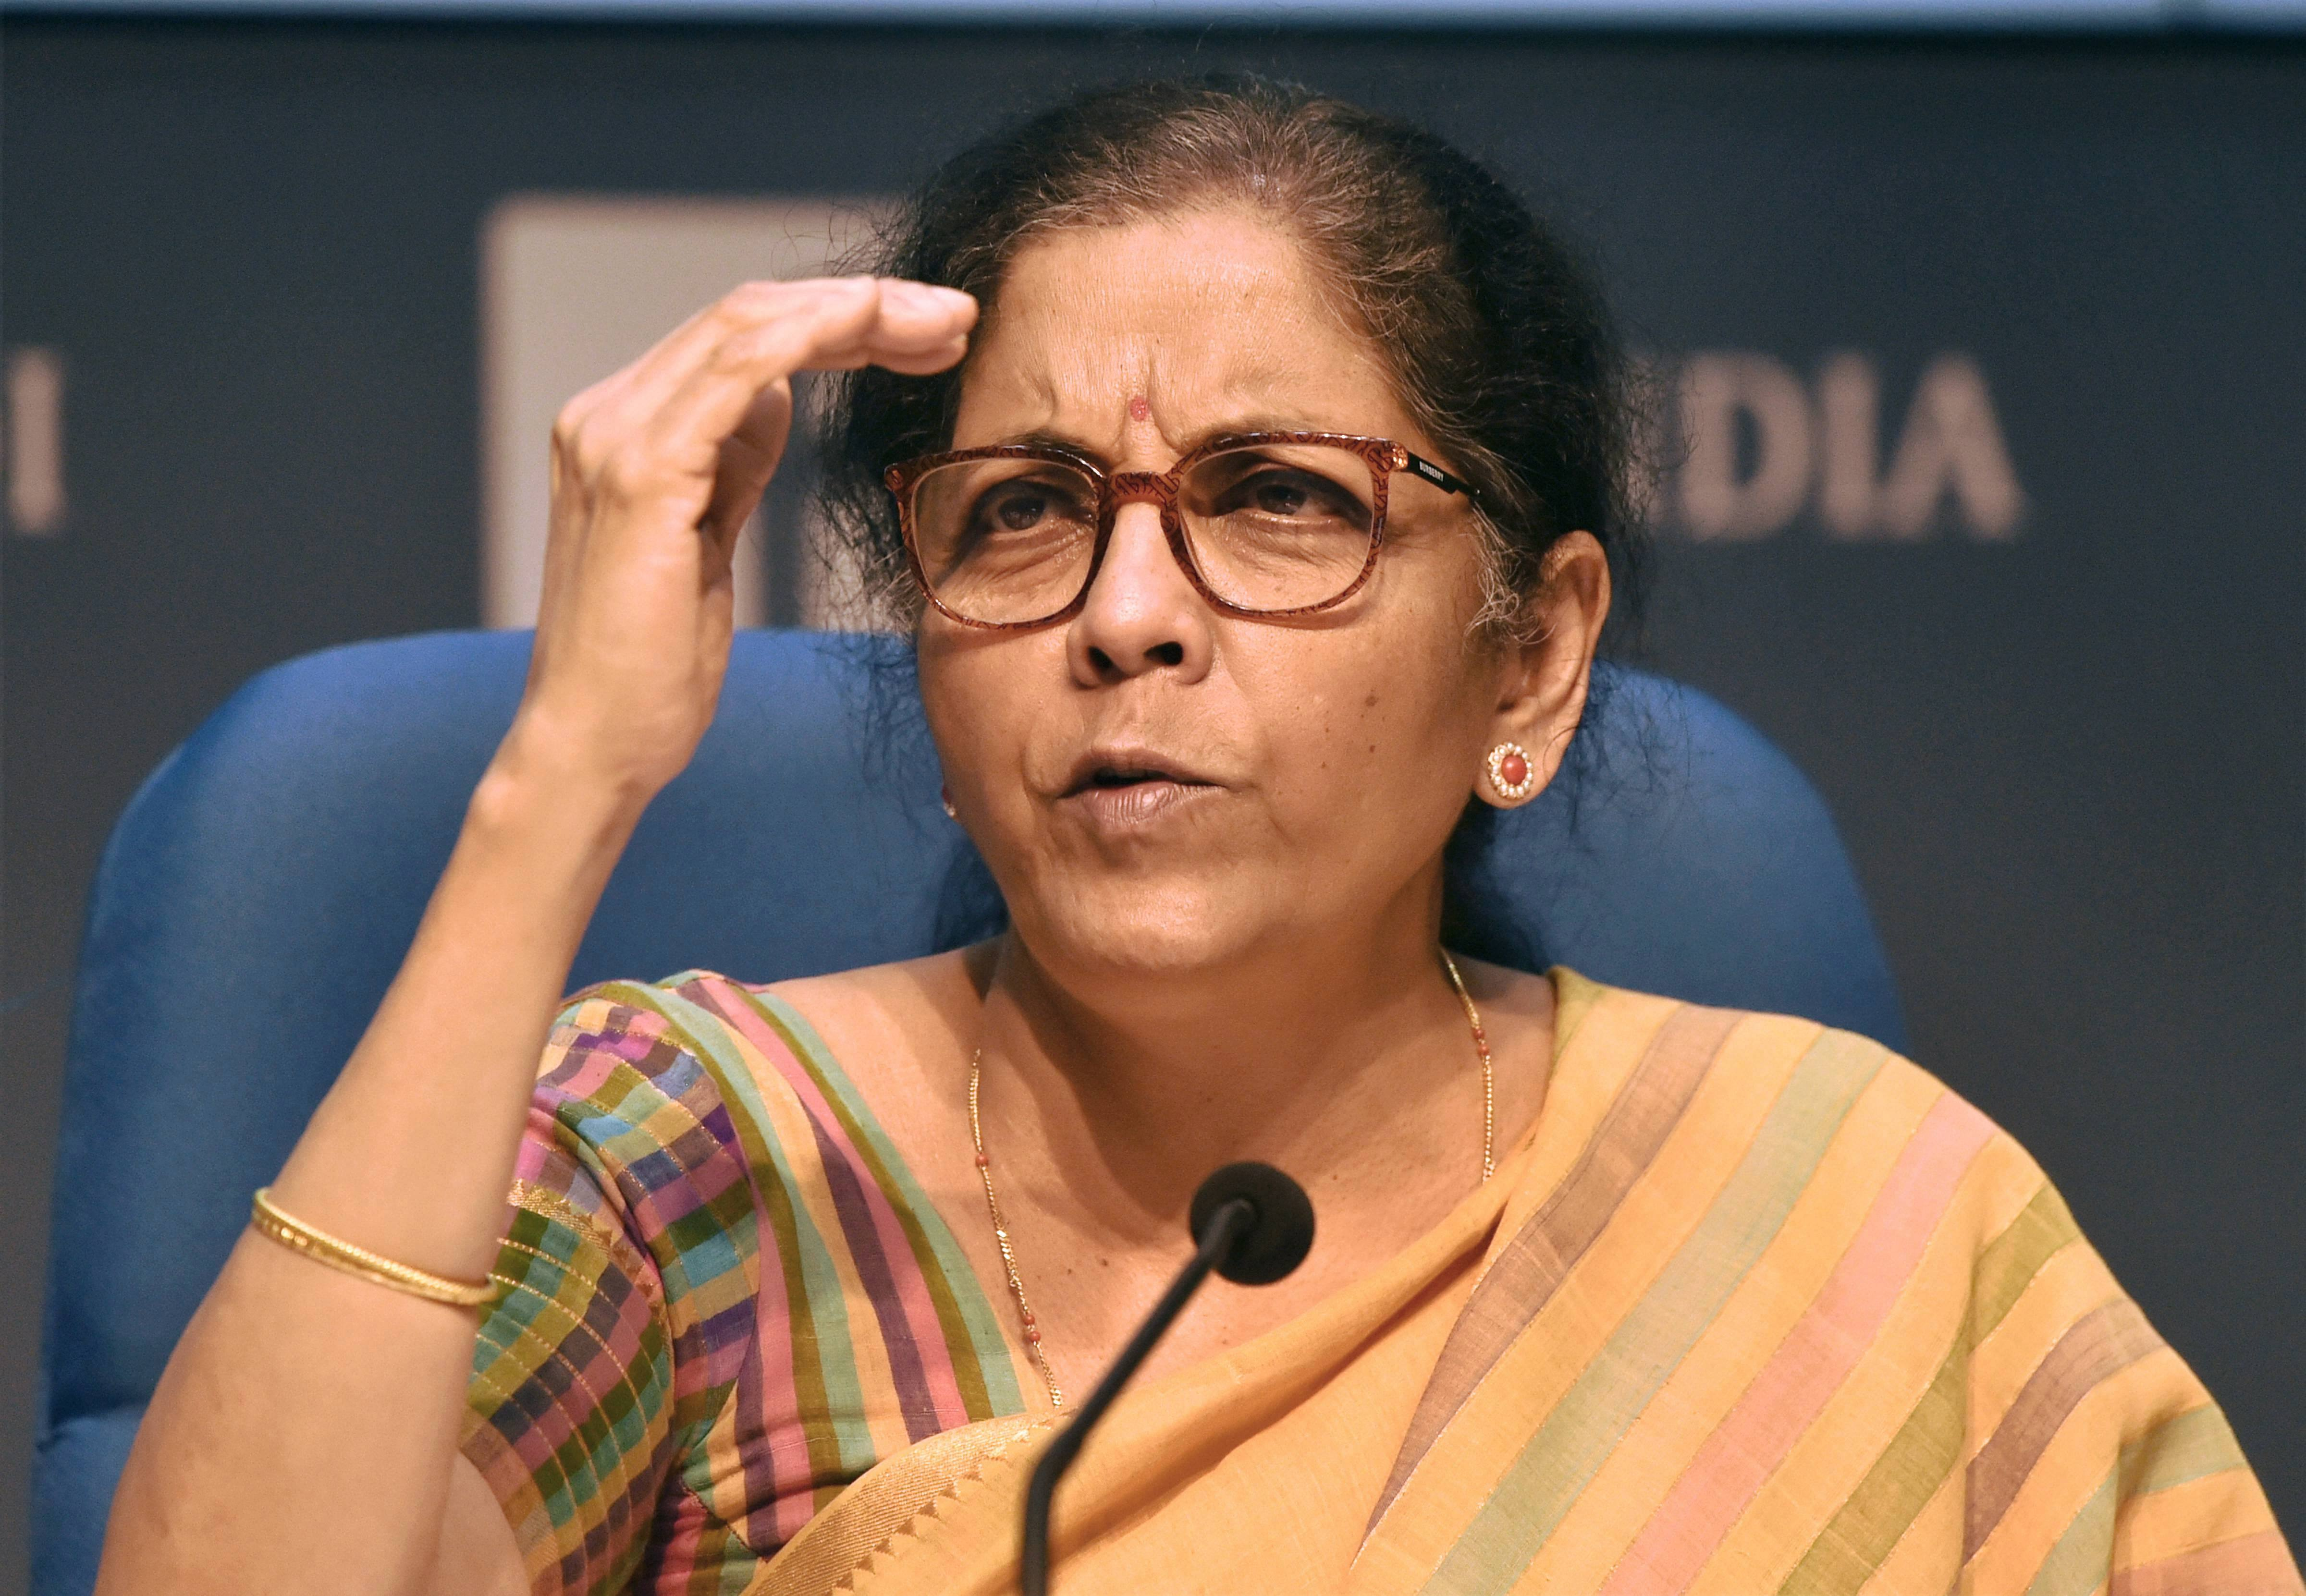 Union Finance Minister Nirmala Sitharaman addresses a press conference at National Media Centre in New Delhi, Thursday, May 14, 2020.